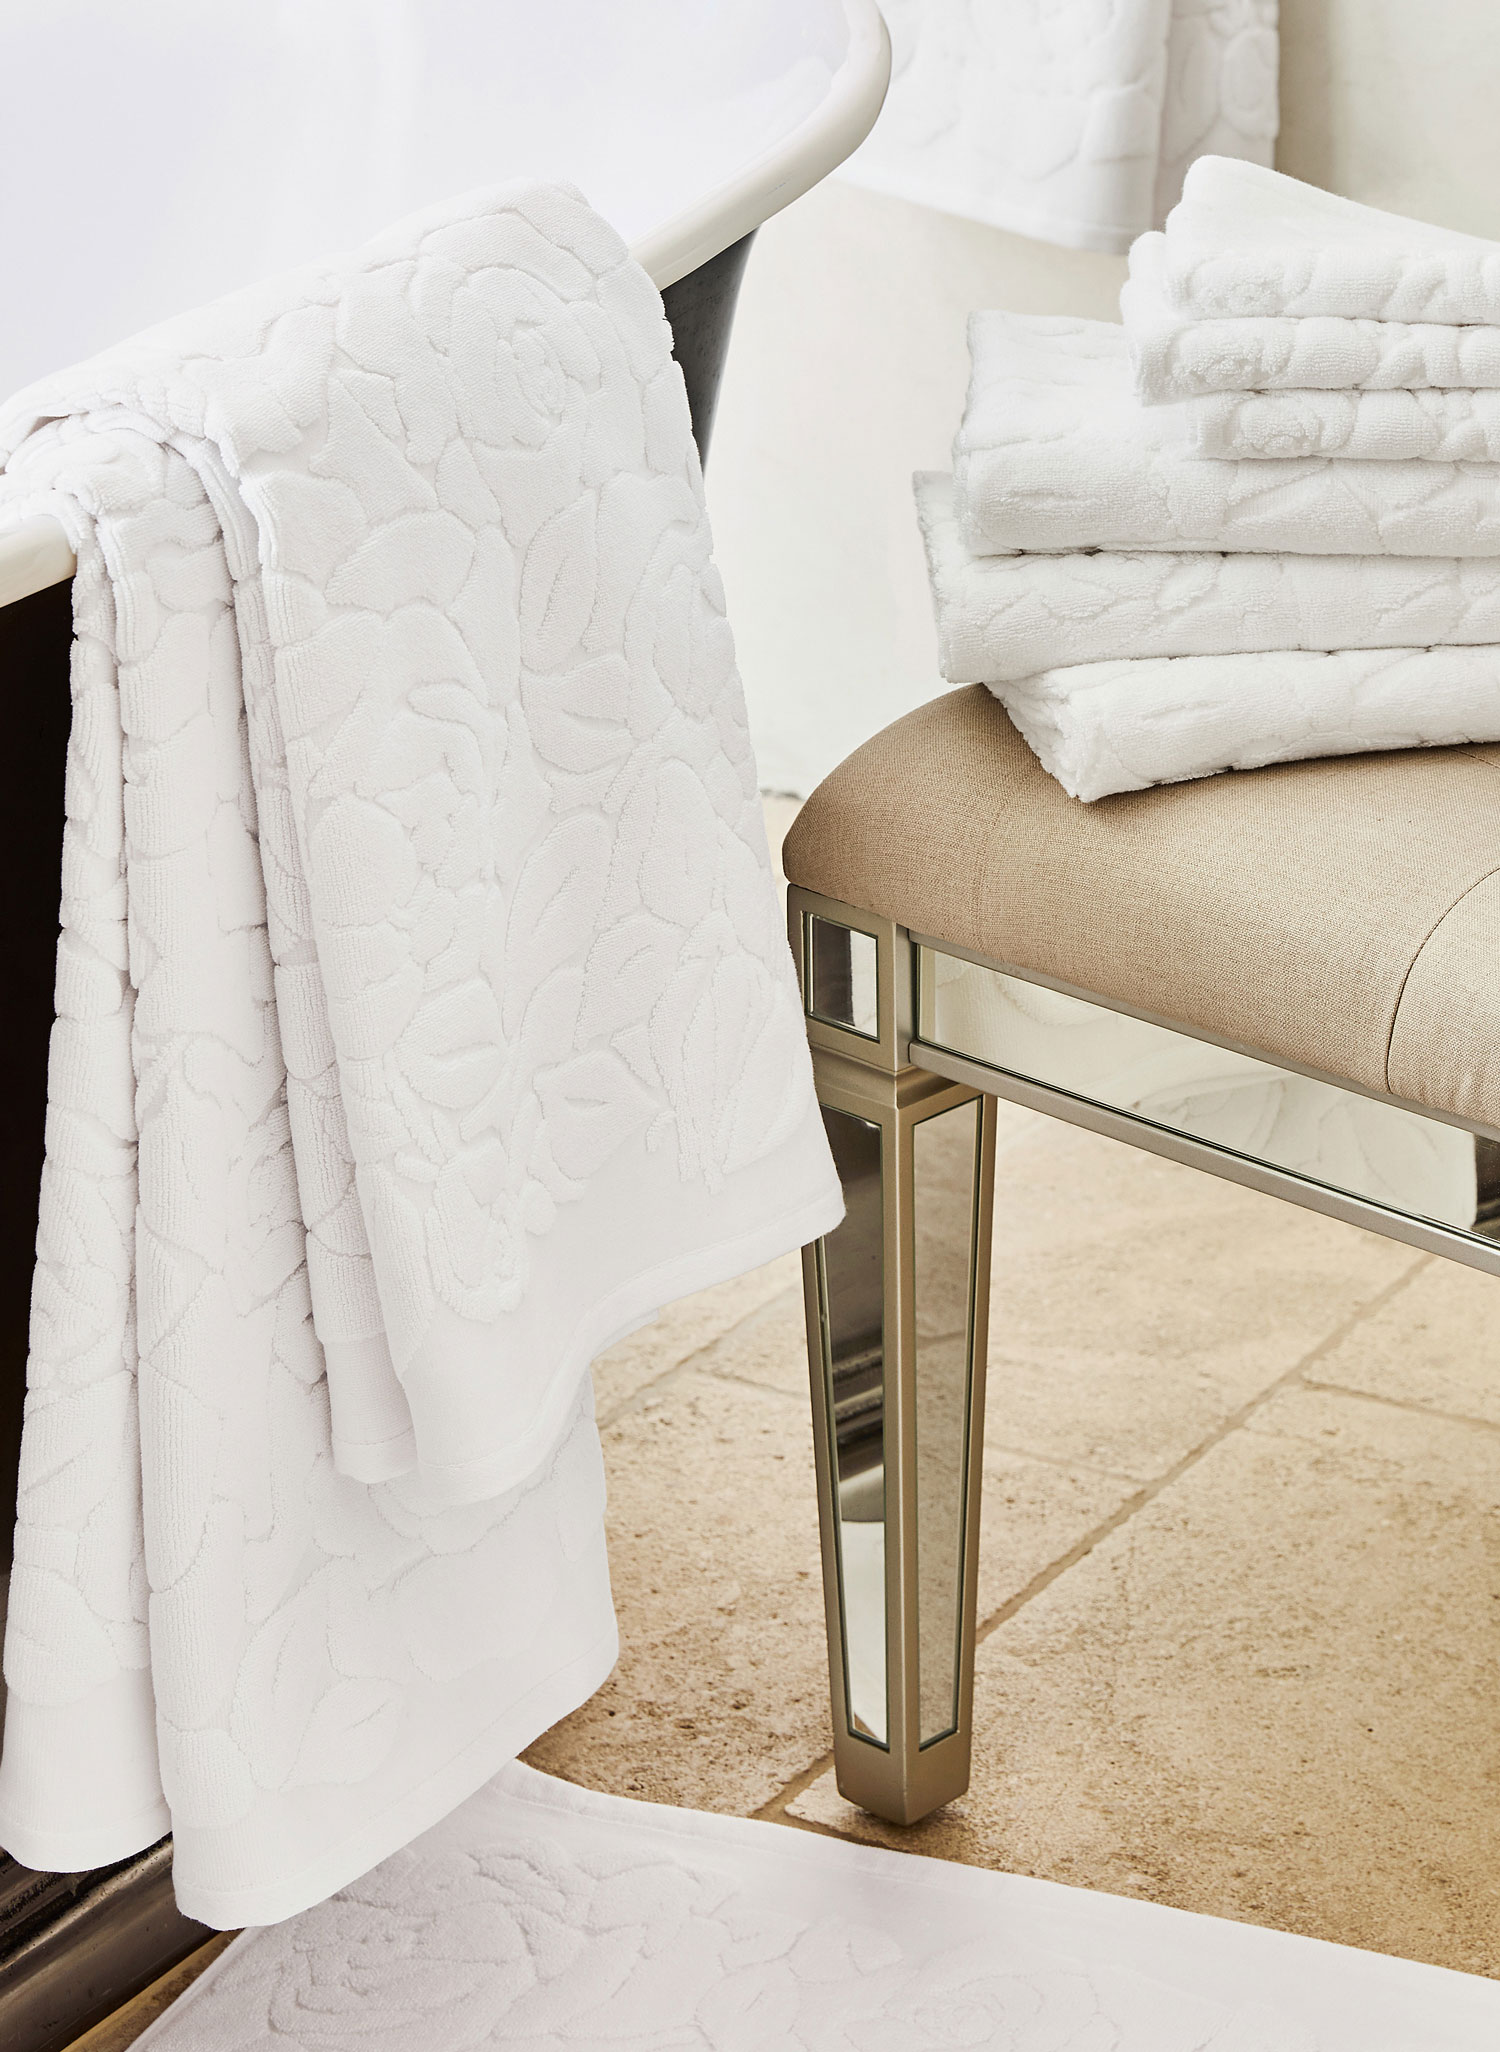 Monique Lhuillier for Pottery Barn collection towels